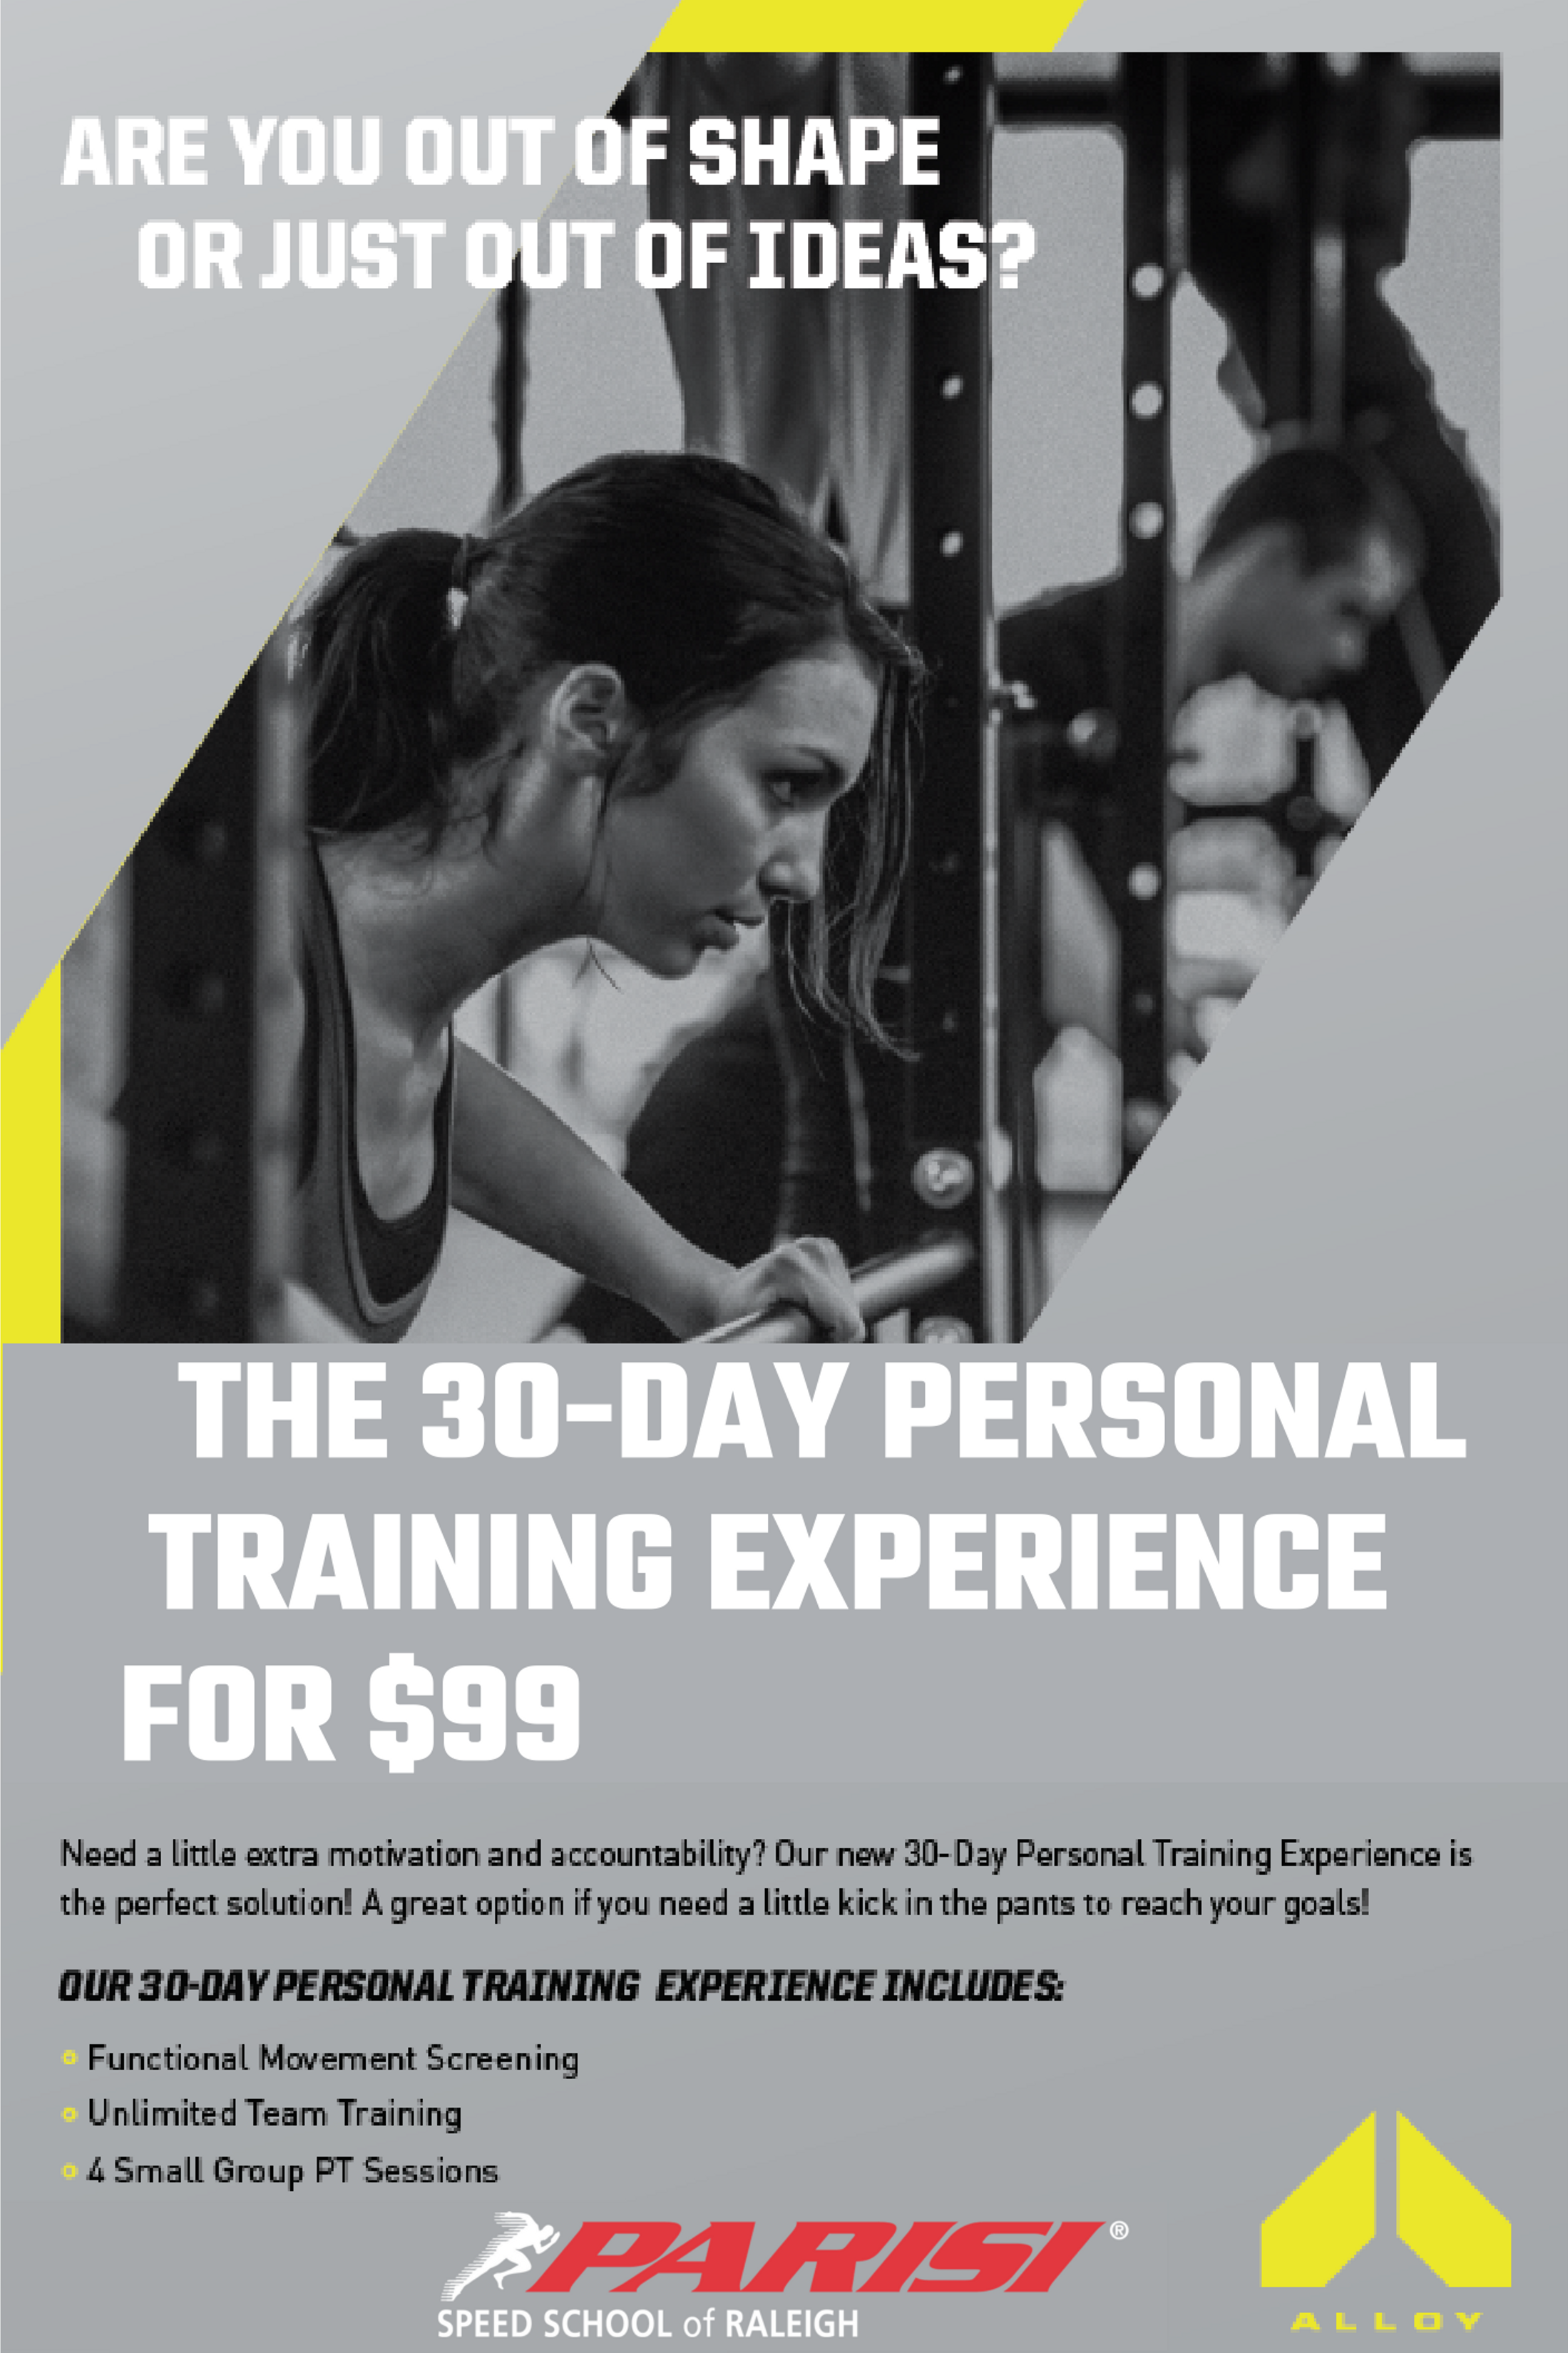 THE 30-DAY PERSONAL TRAINING EXPERIENCE FOR $99 (1) (1).png